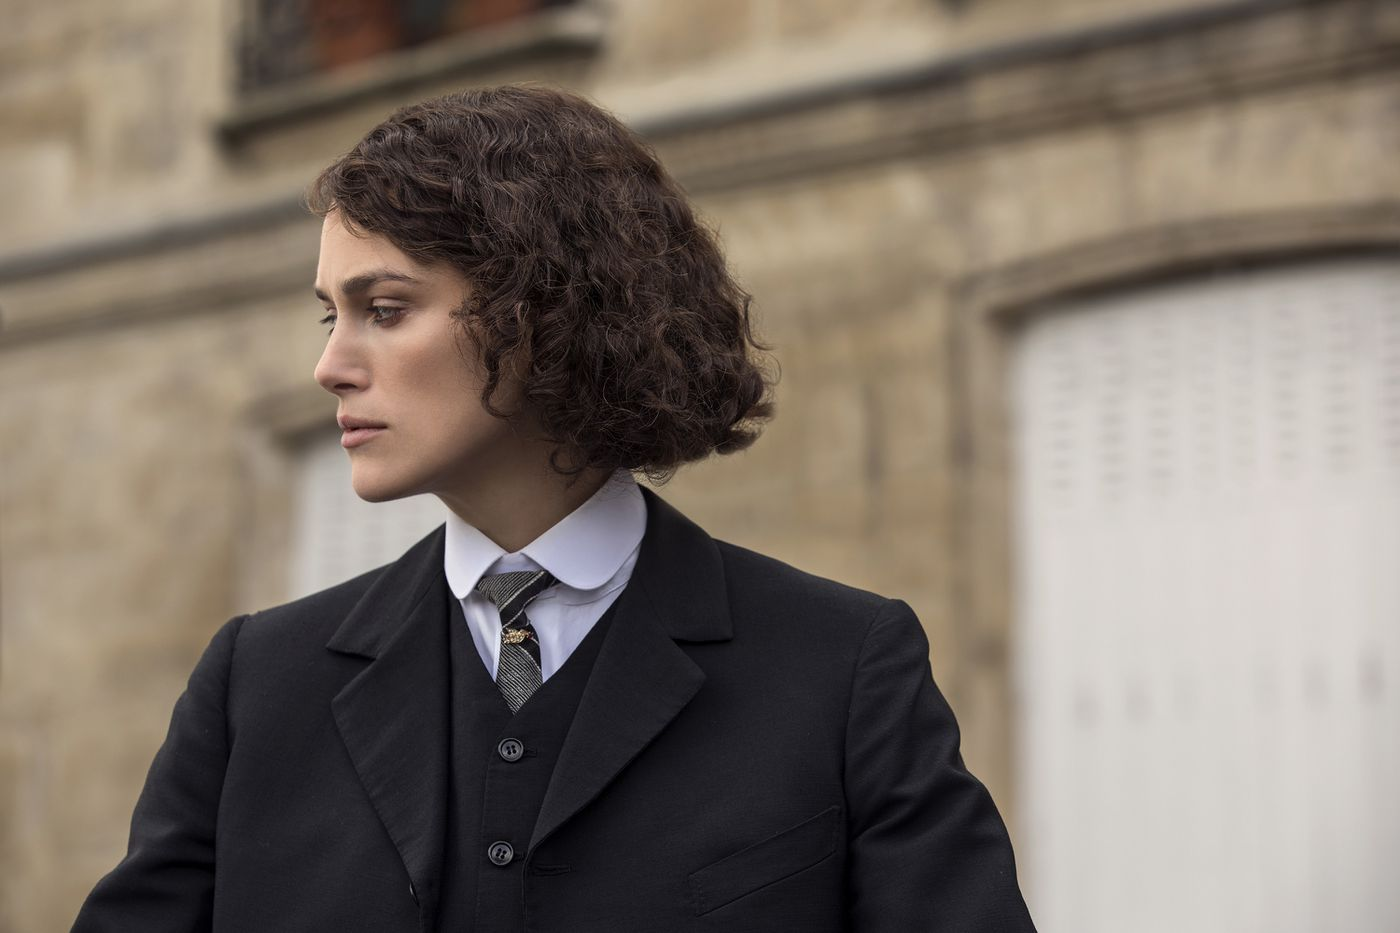 Keira Knightley has the write stuff in 'Colette'